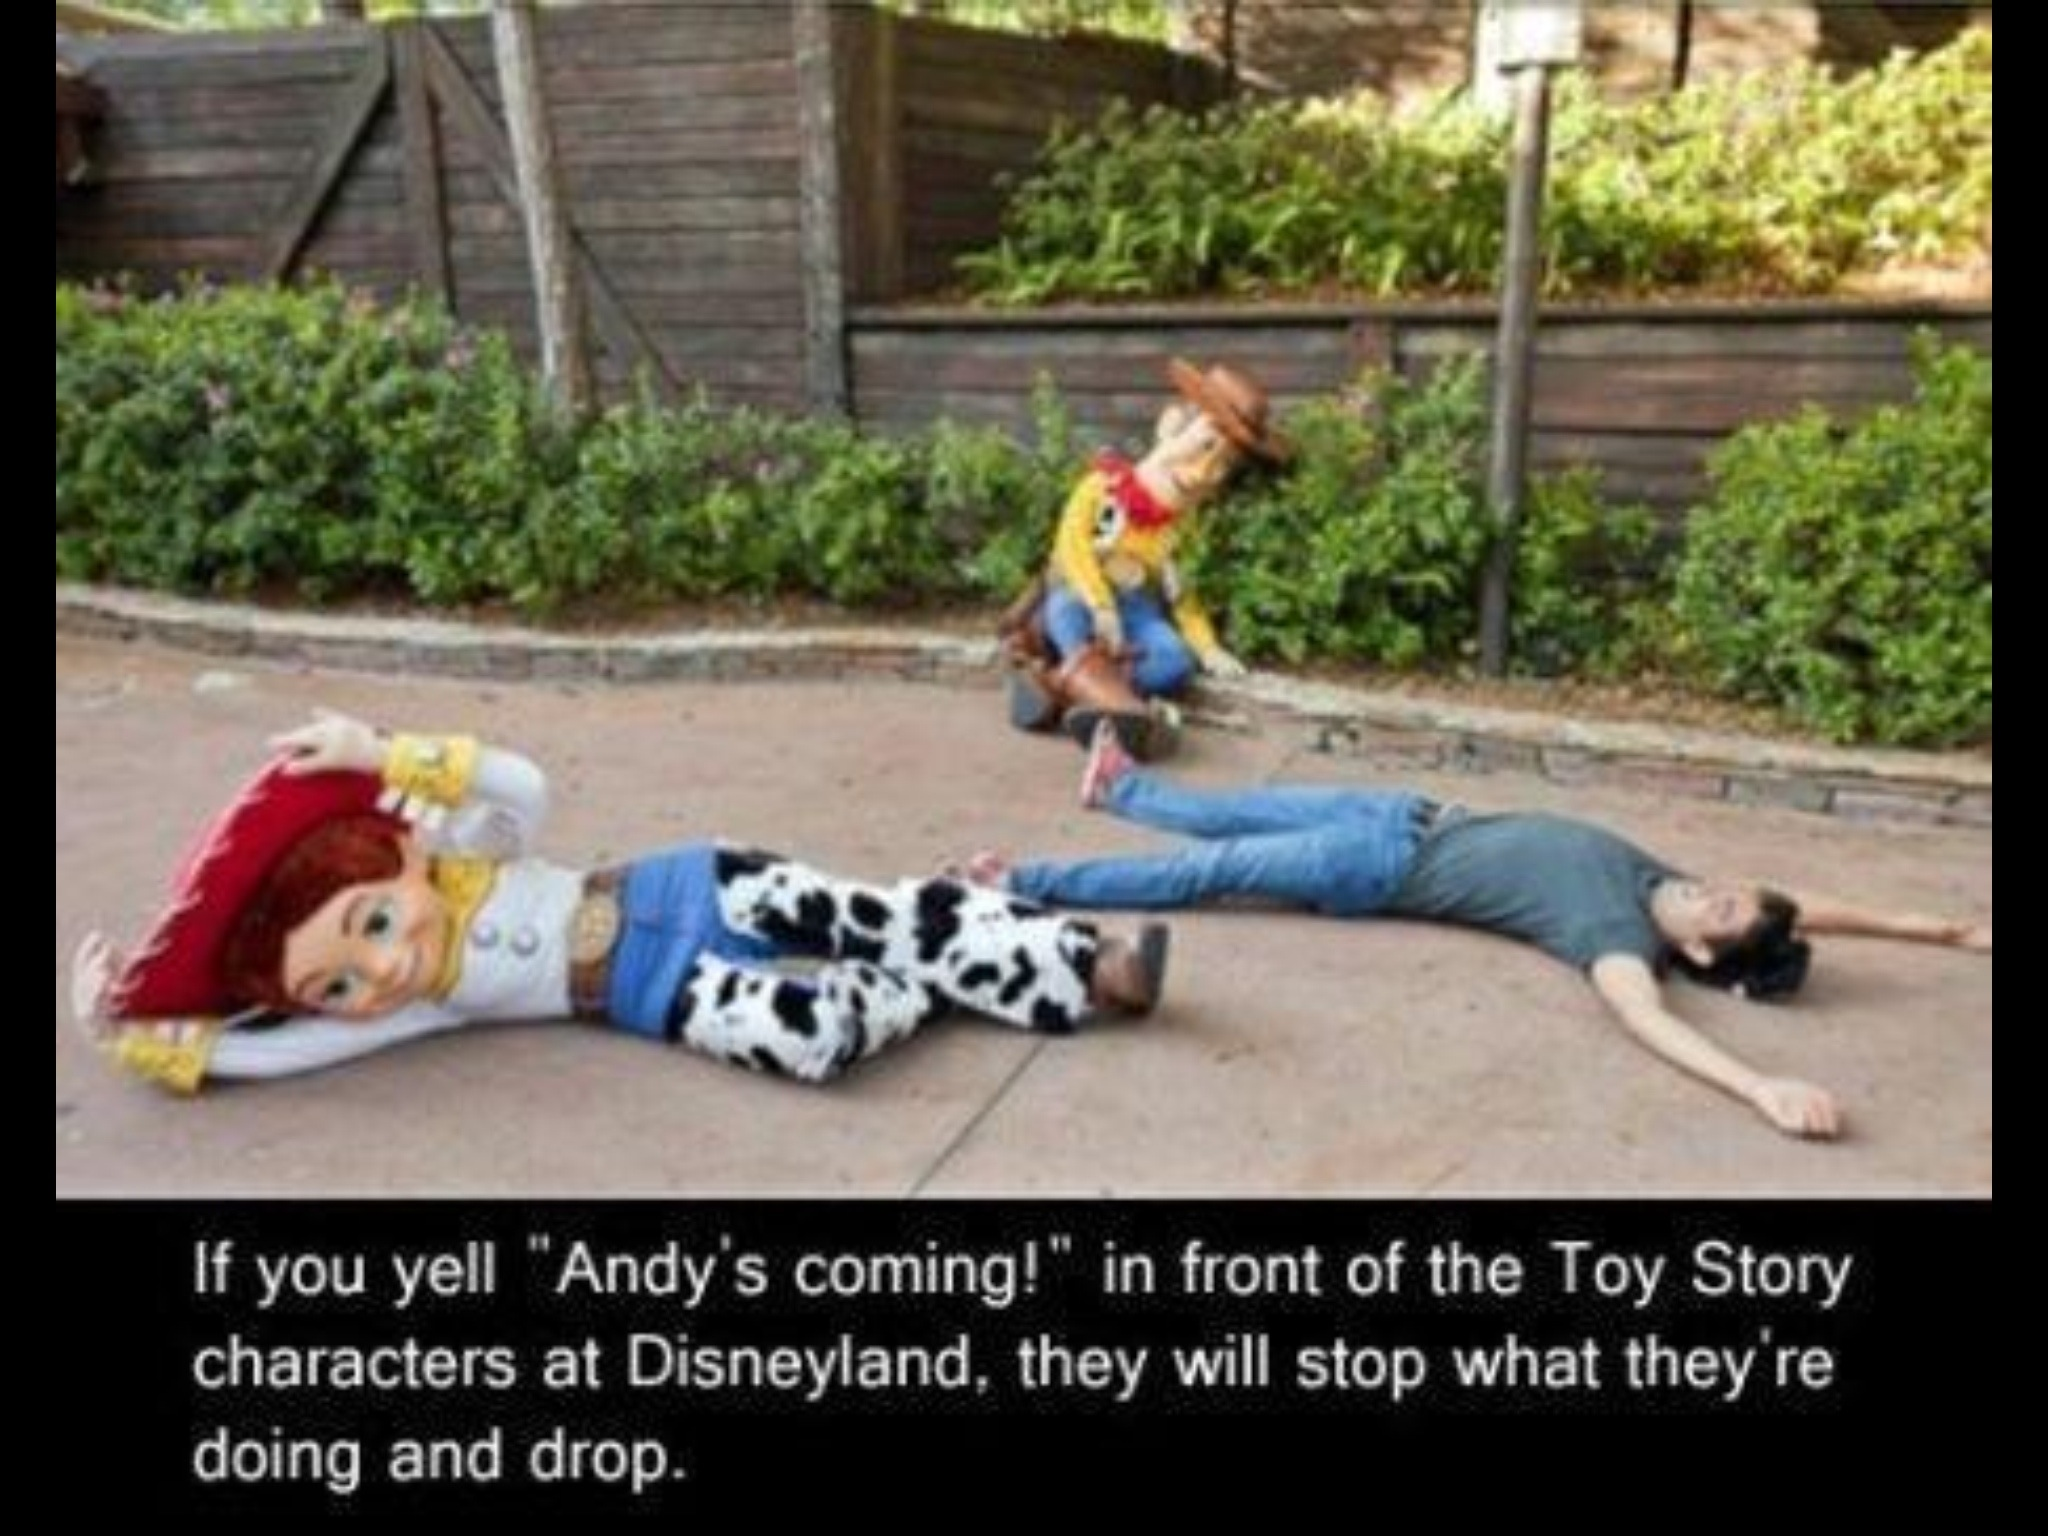 Must do this next time in Disney